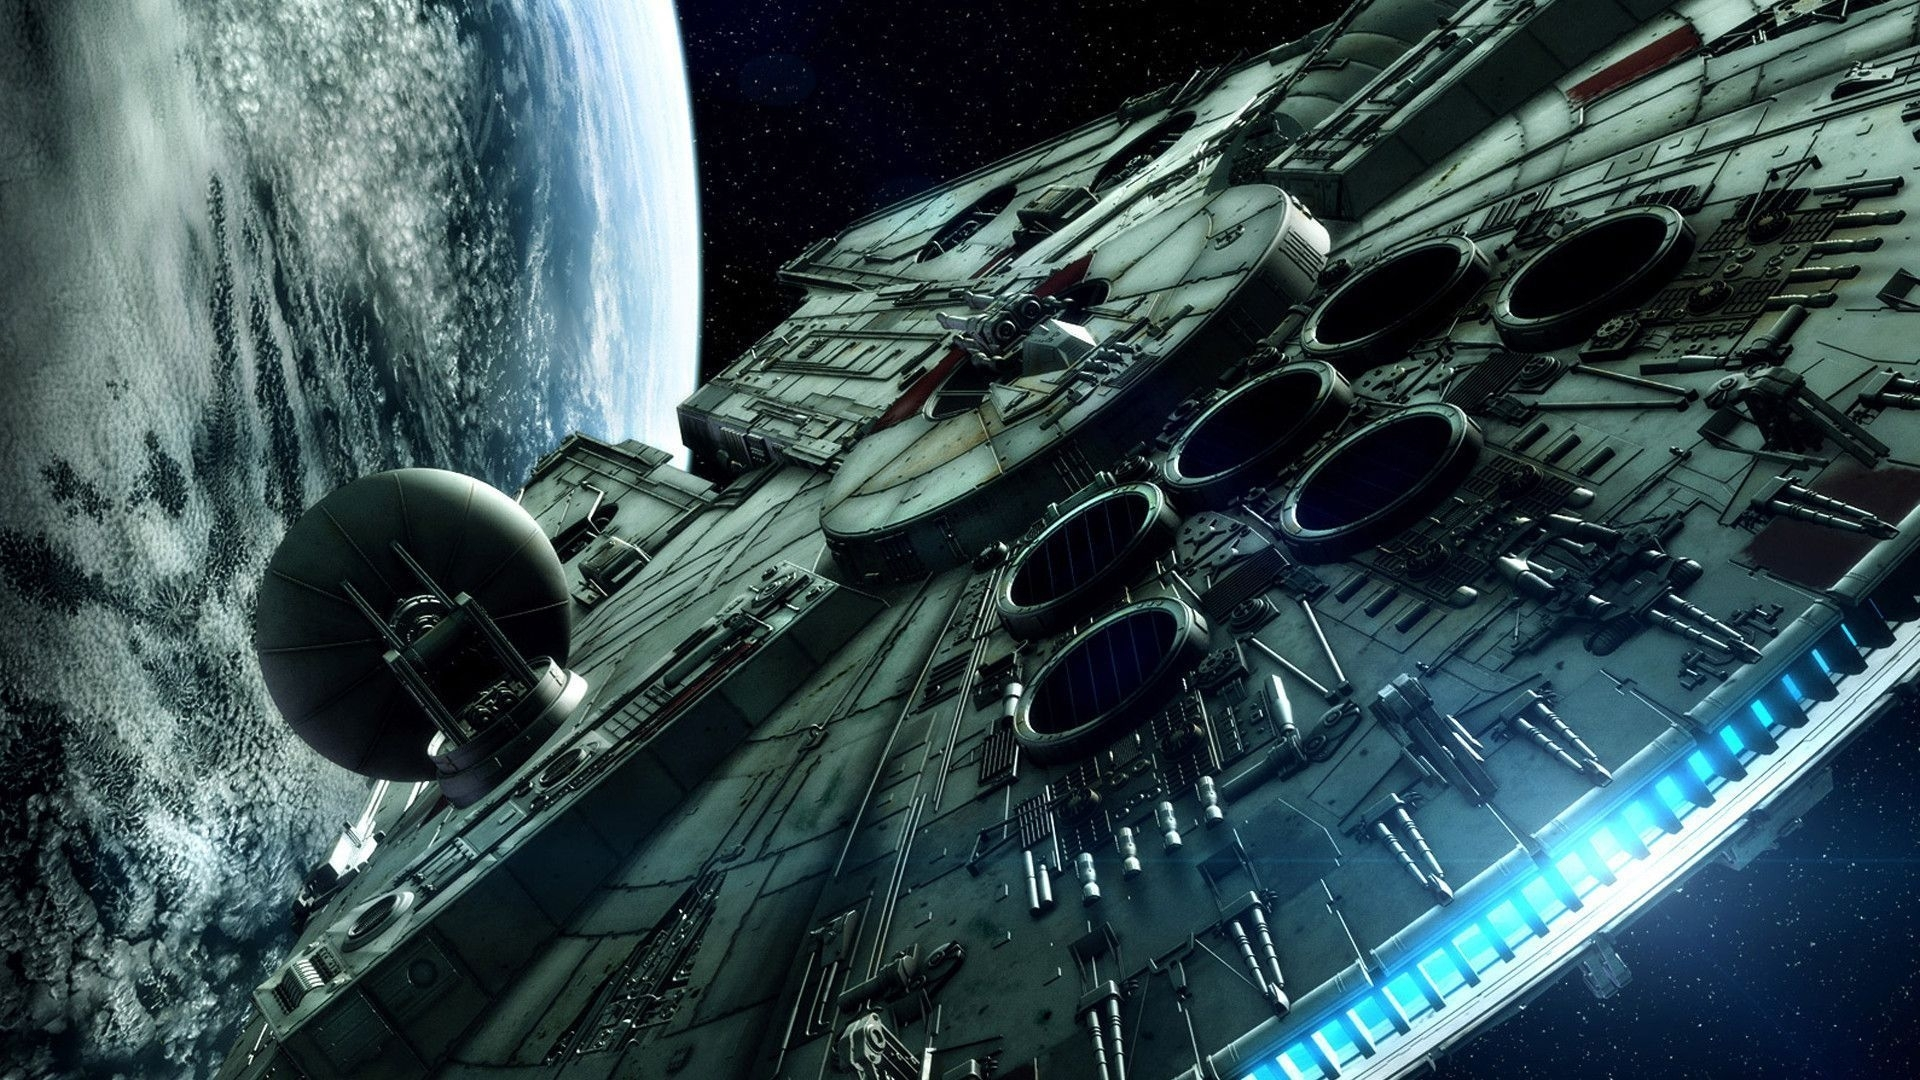 star wars backgrounds | movies wallpapers | pinterest